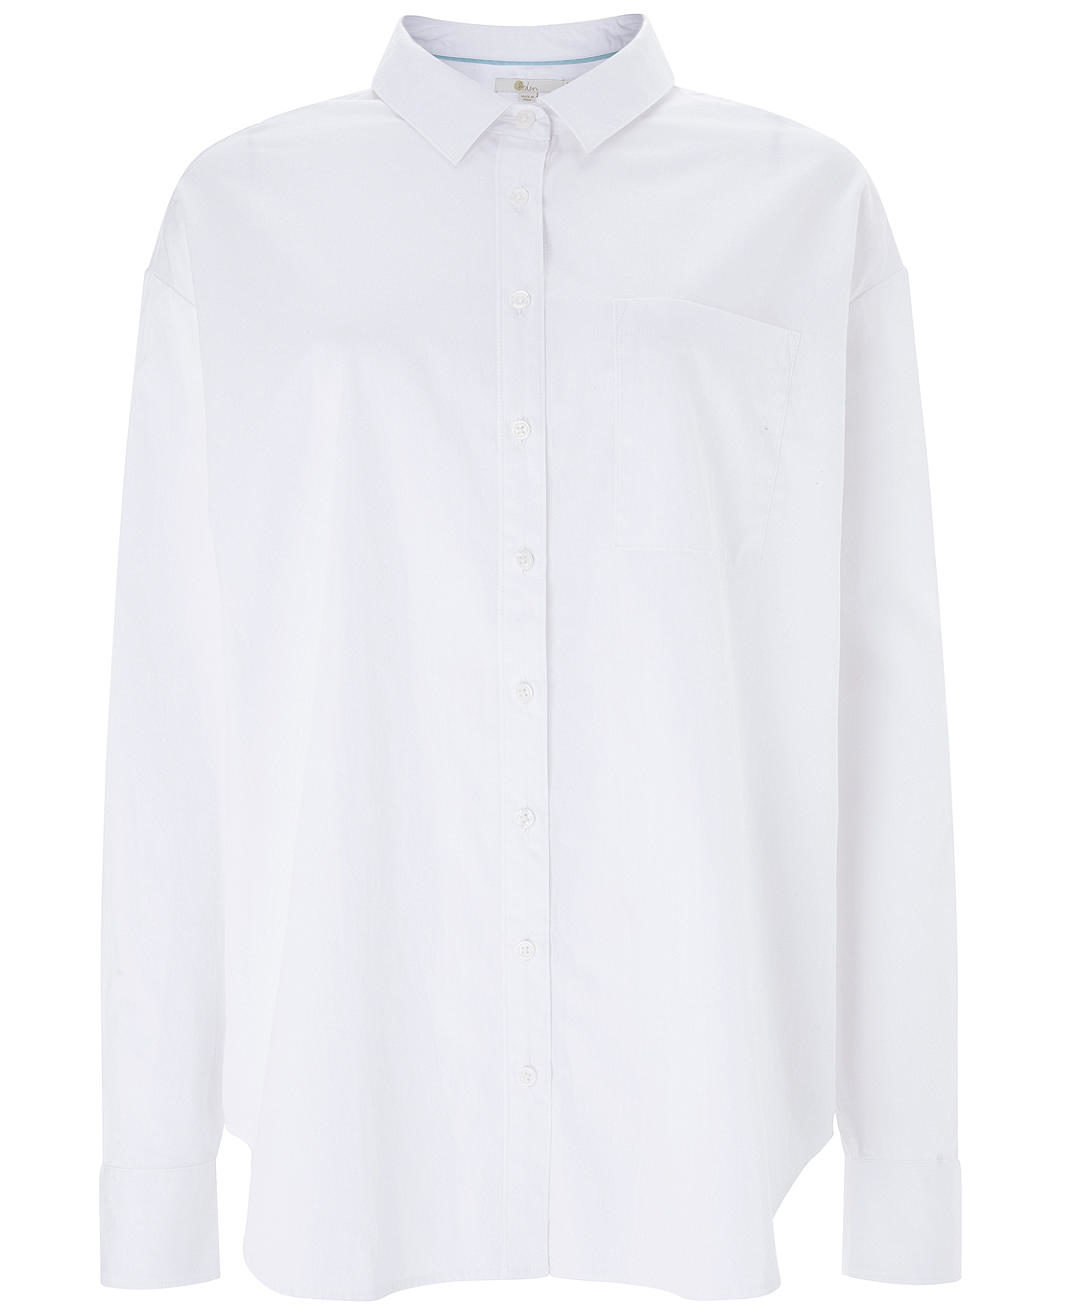 Boden Maria White Relaxed Shirt